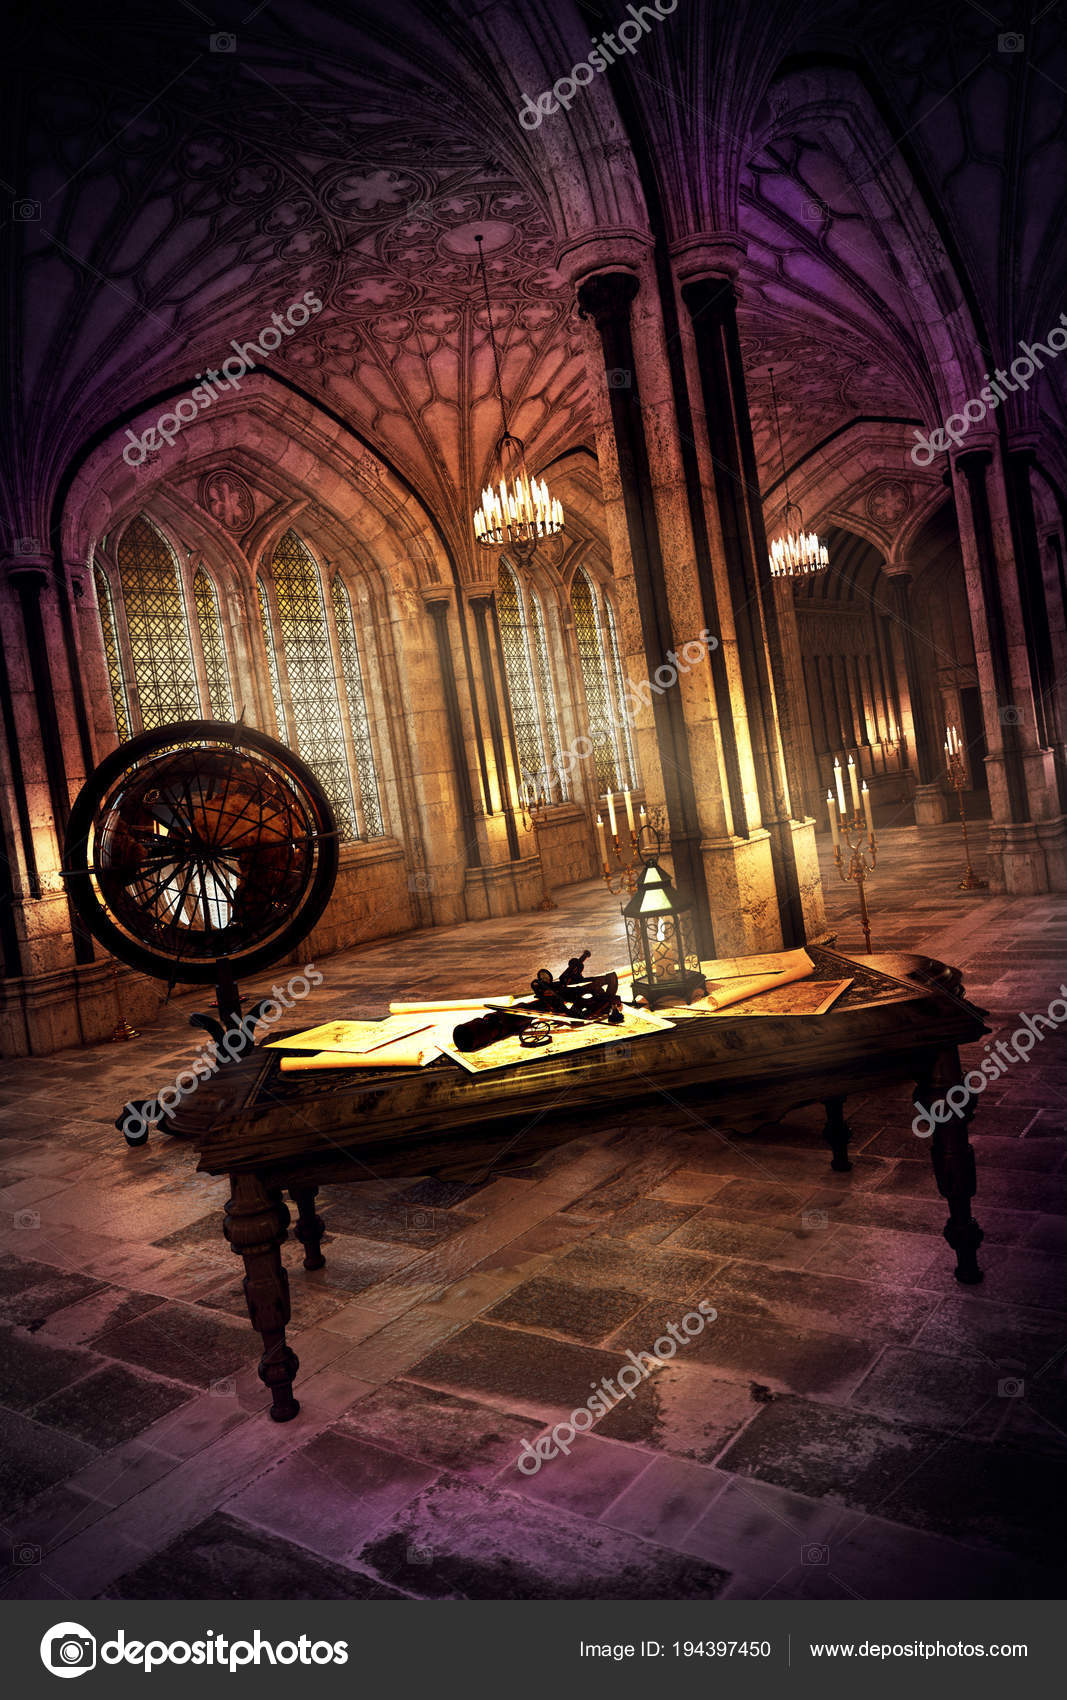 Cgi Illustration Fantasy Castle Desk — Stock Photo © Ravven